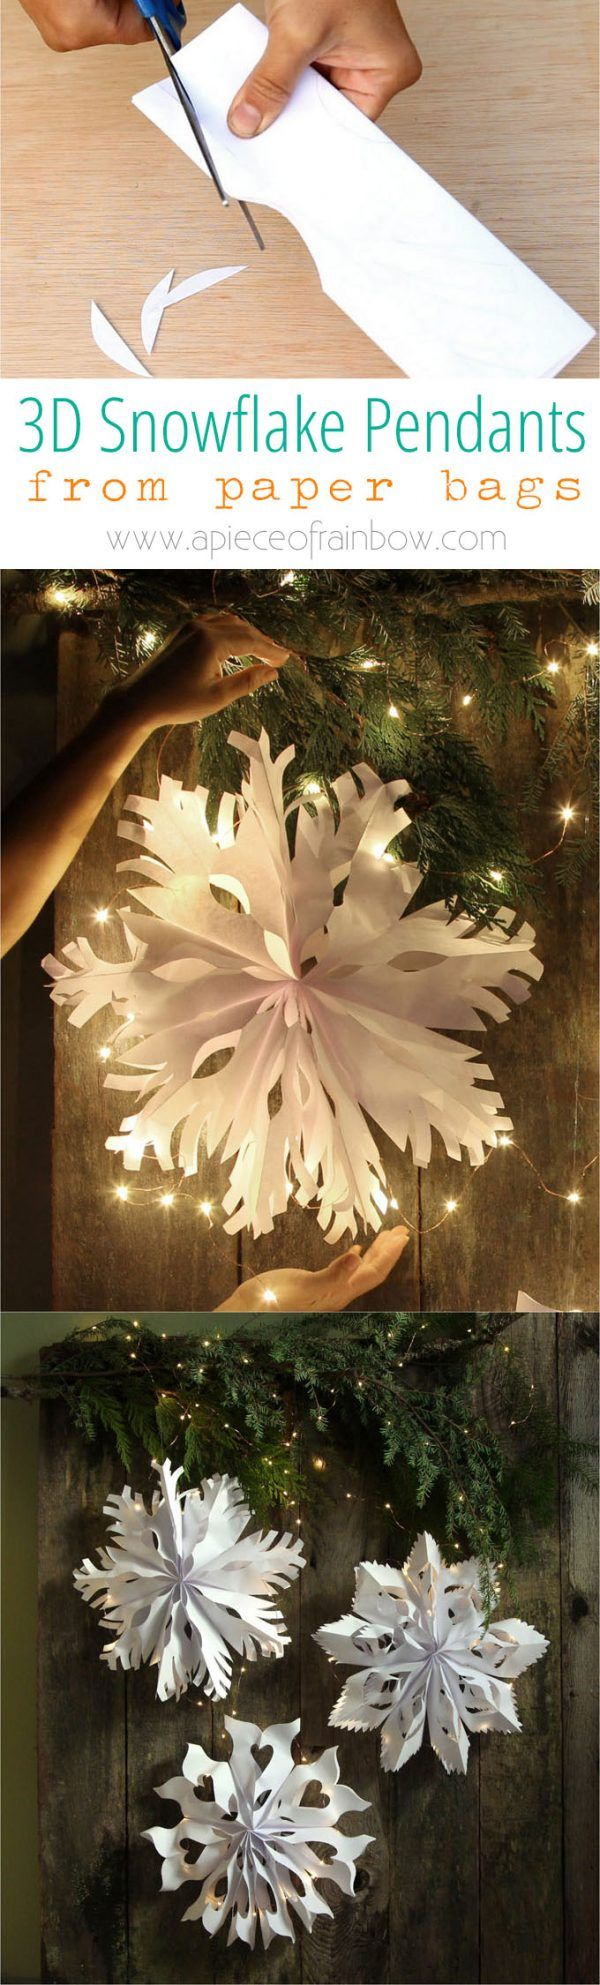 Giant 3D Paper Snowflake Pendants from Paper